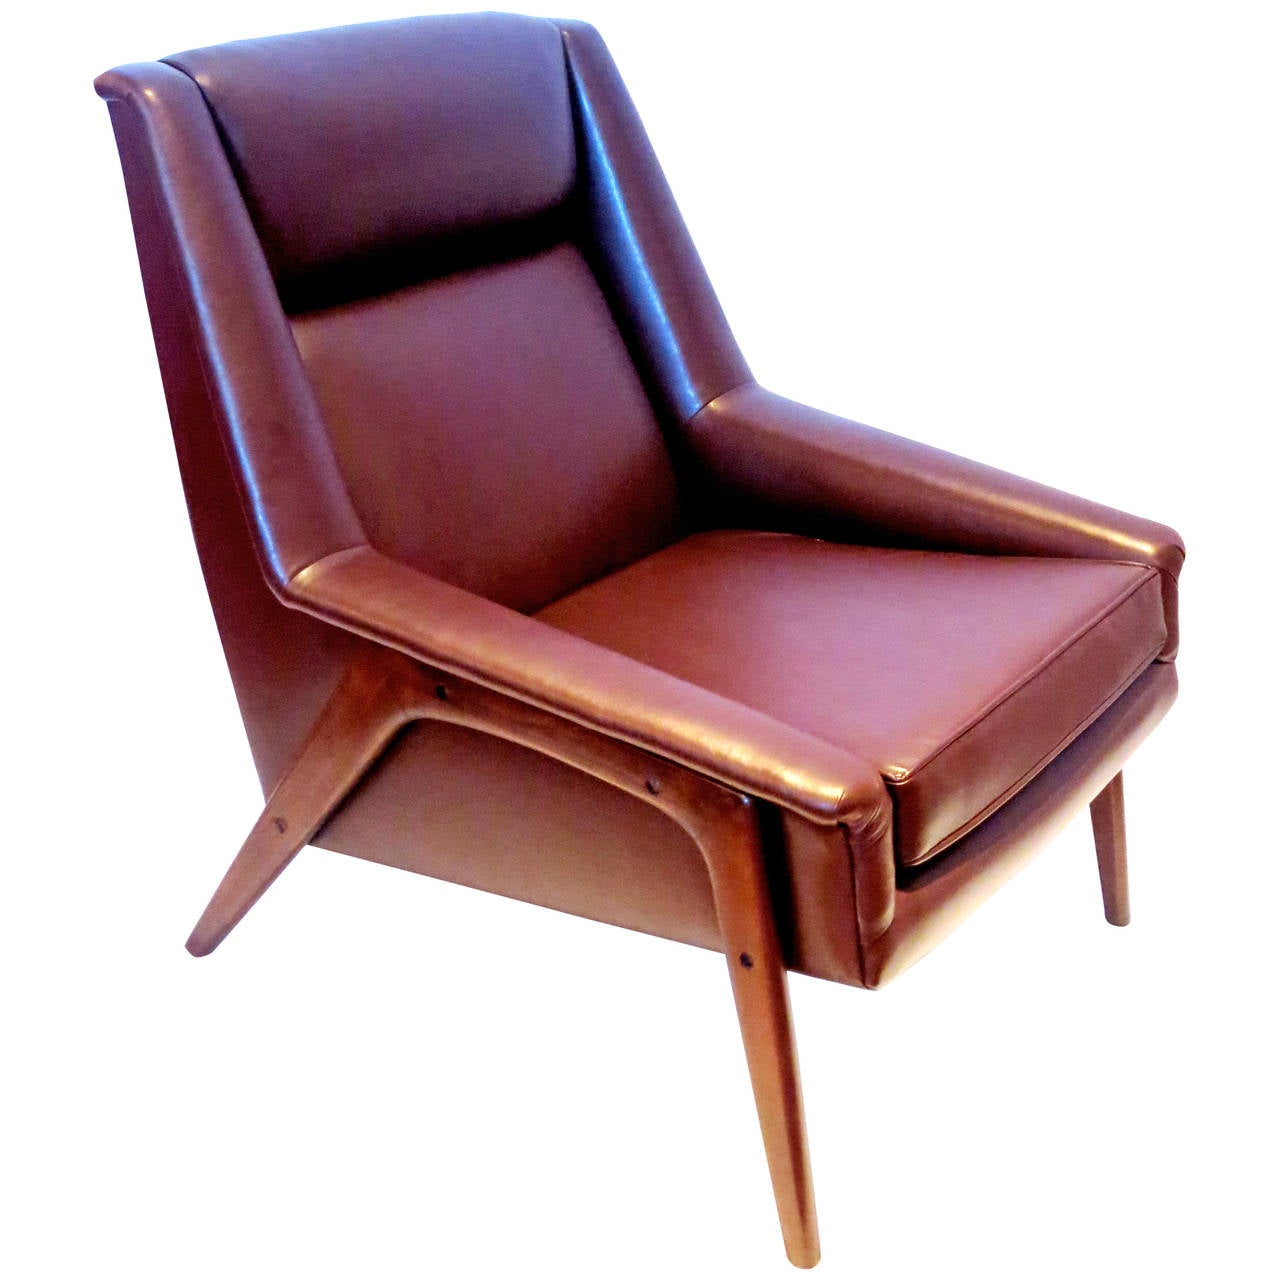 modern leather lounge chair images hd png danish brown by dux designed